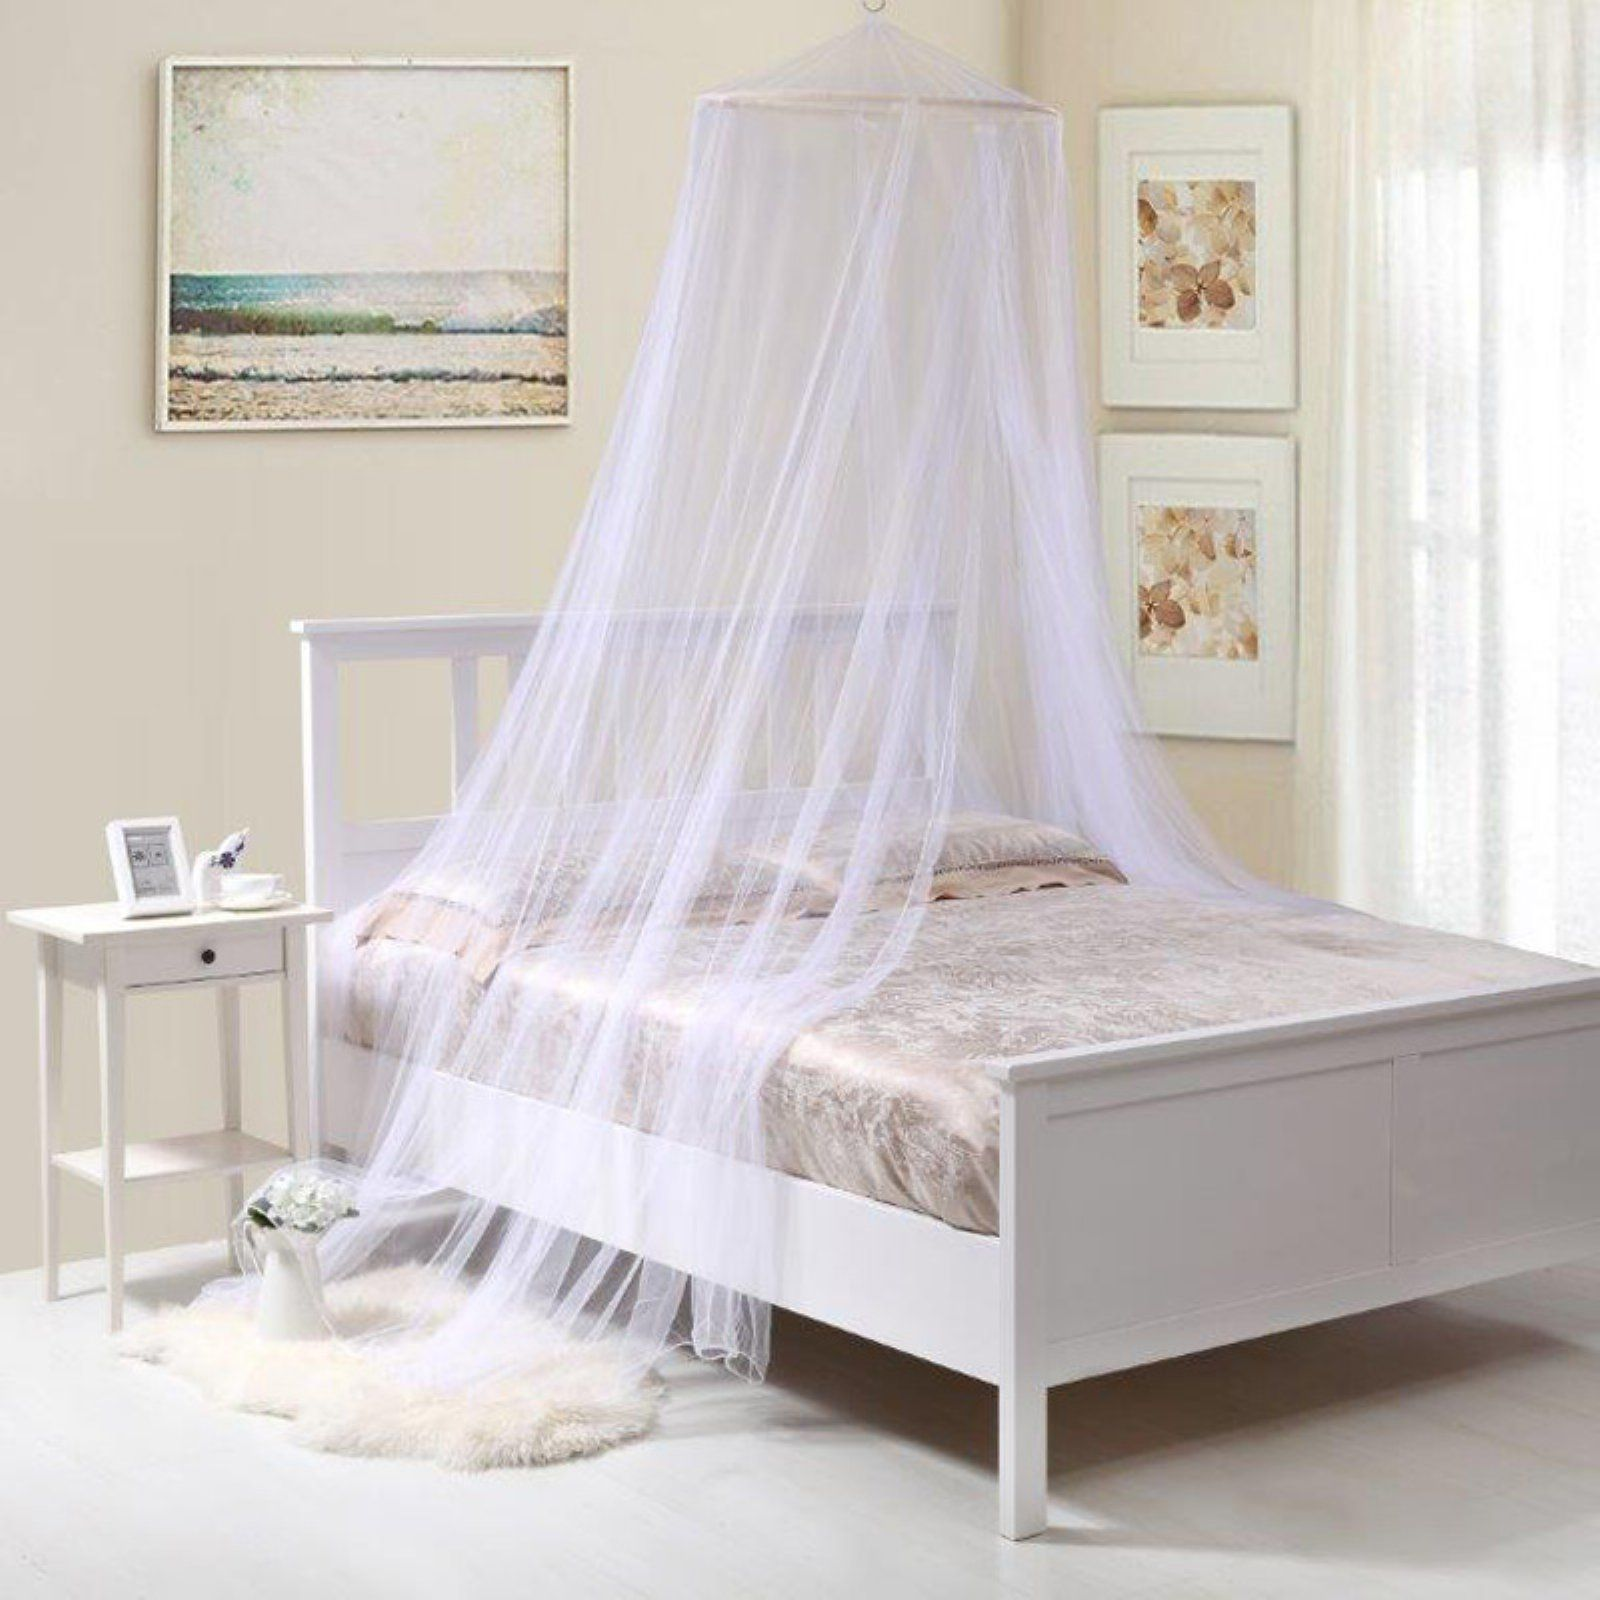 Oasis Round Bed Canopy White Canopy Bedroom Home Decor Canopy